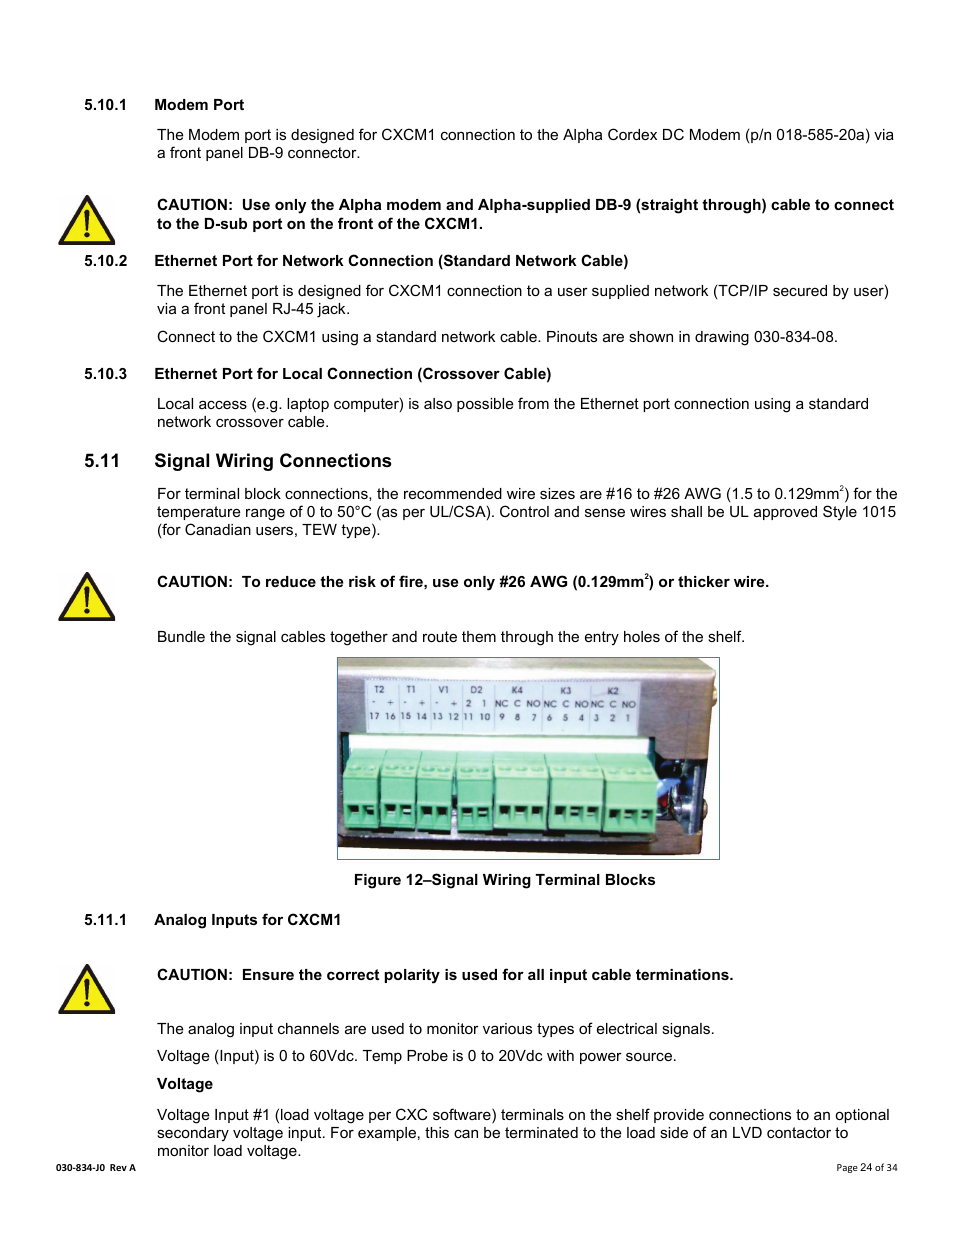 1 Modem Port 11 Signal Wiring Connections Analog Inputs For Straight Through Cable Scheme Cxcm1 Alpha Technologies Cordex 48 12kw User Manual Page 30 68